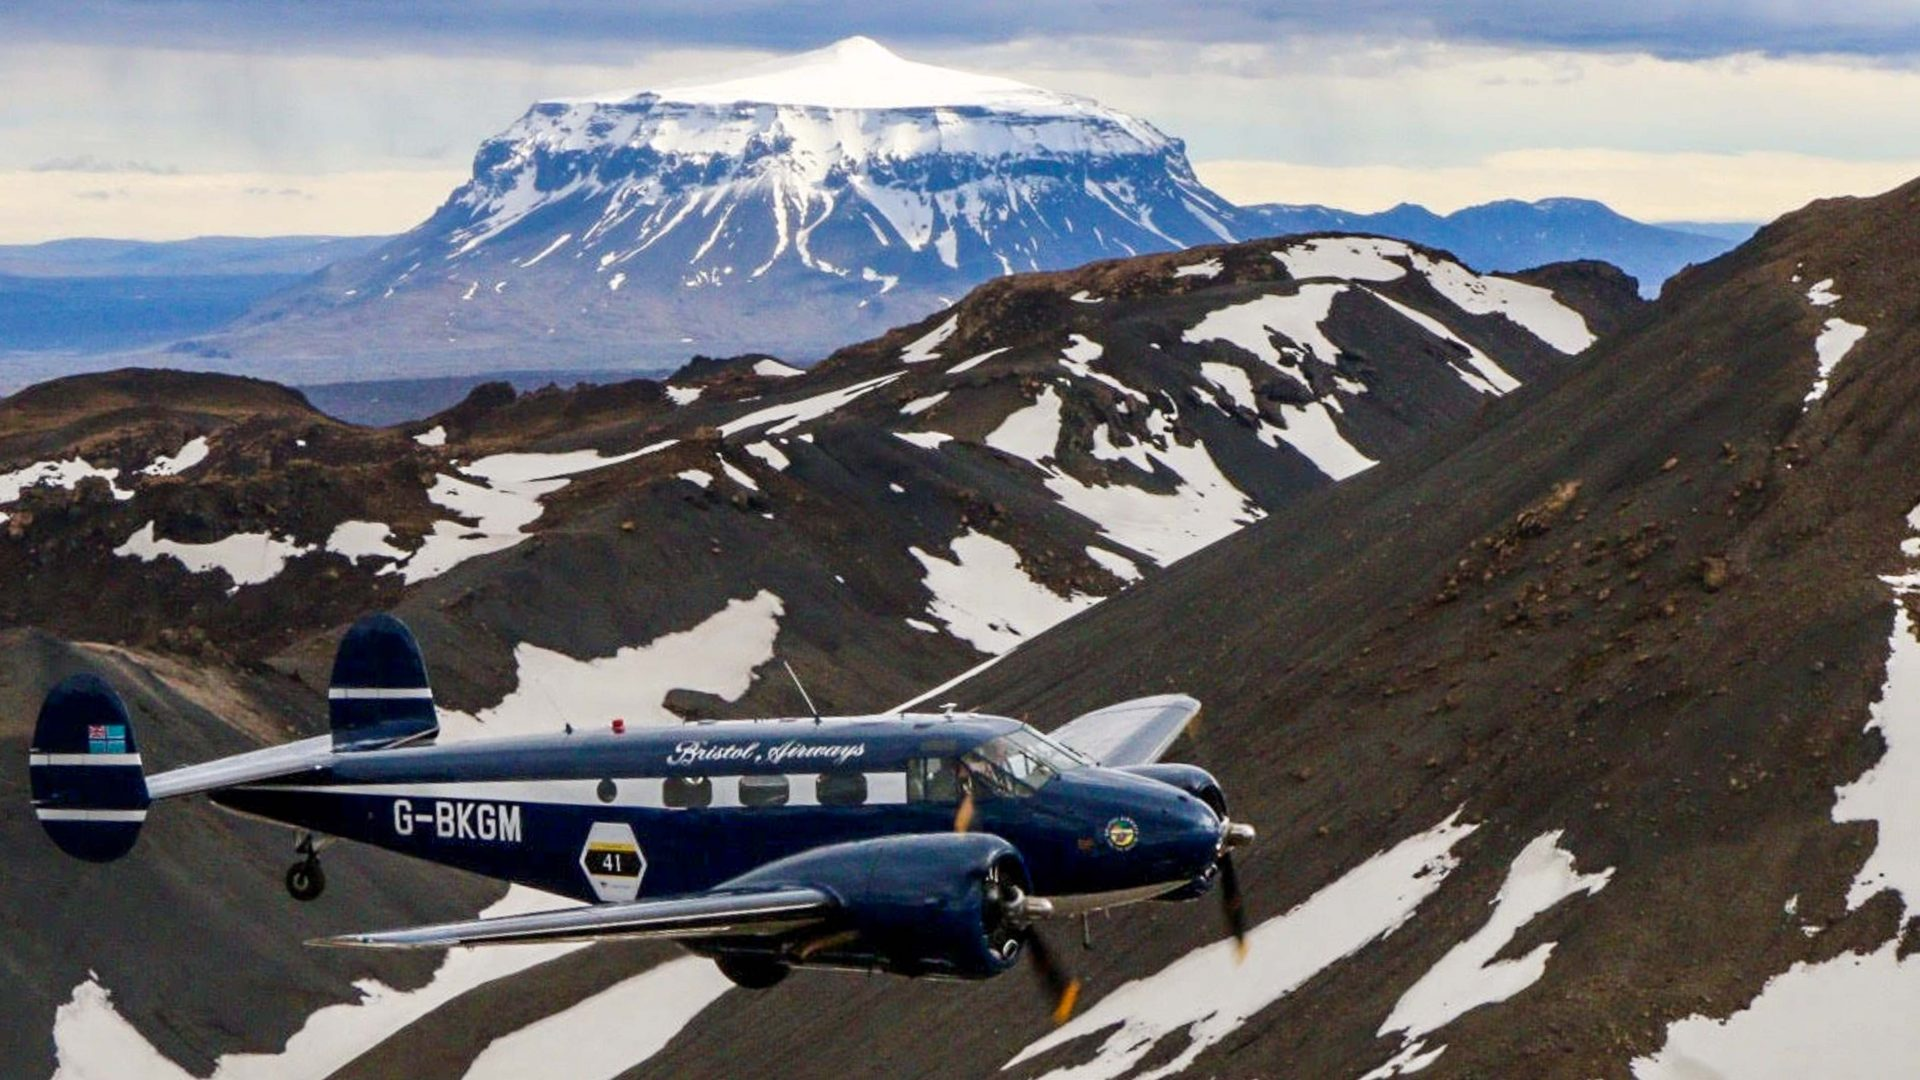 A plane flies above the snowy mountains in Iceland.